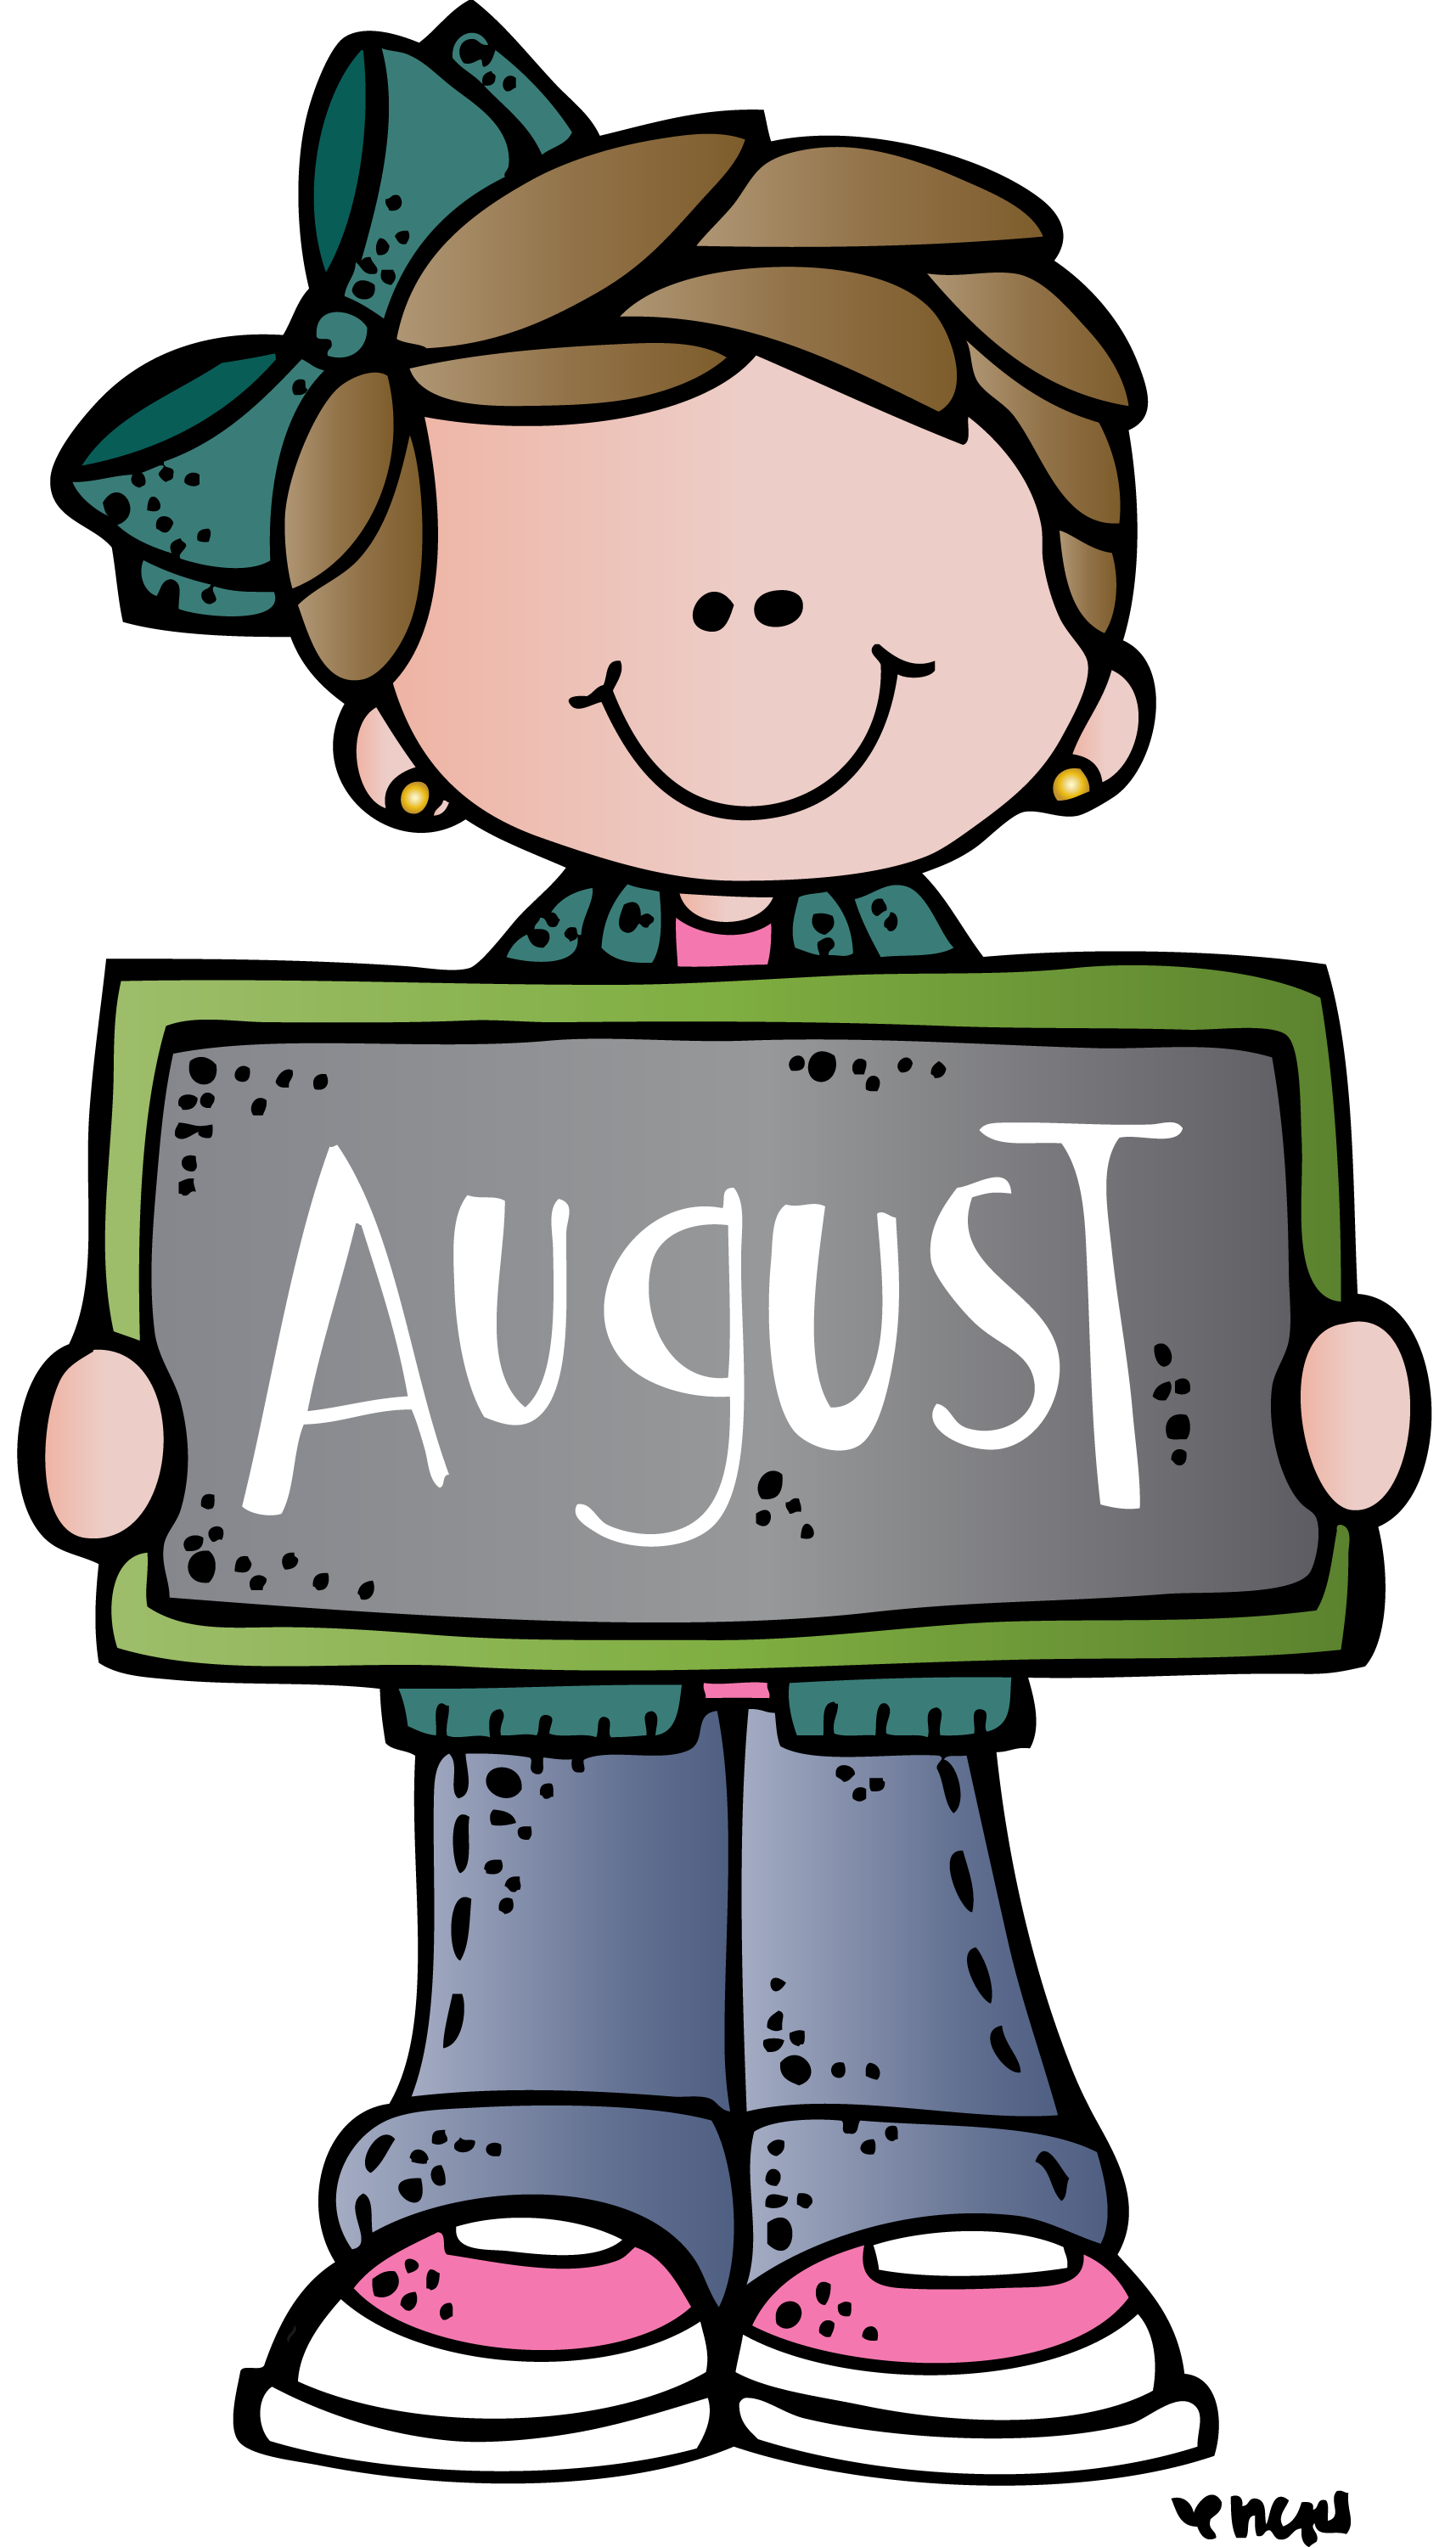 August mel melonheadz pinterest. Folder clipart school form